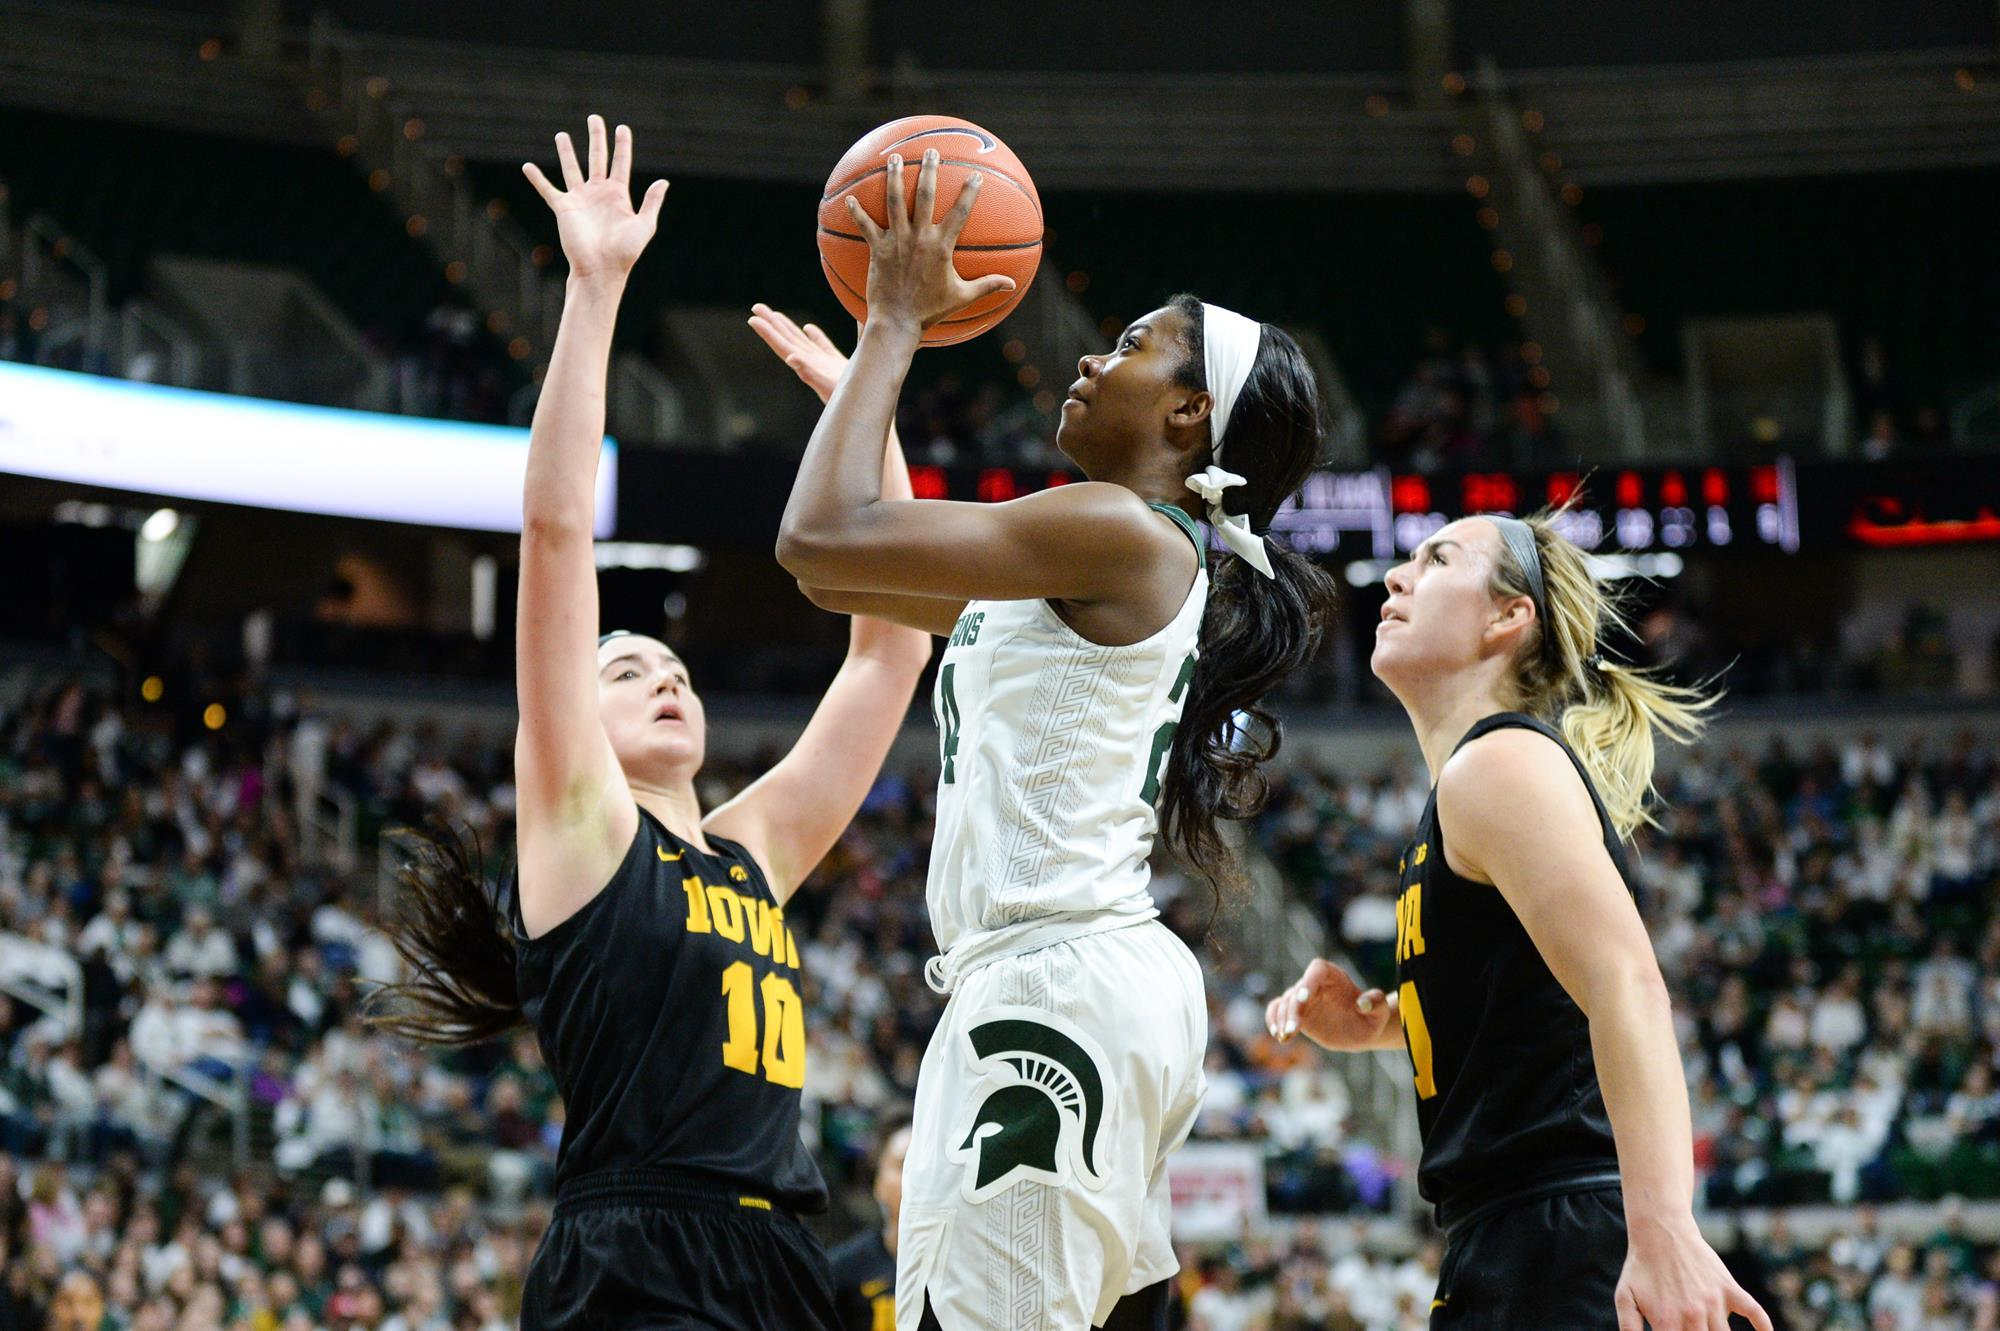 Spartans fall to Boilermakers 76-66 at home